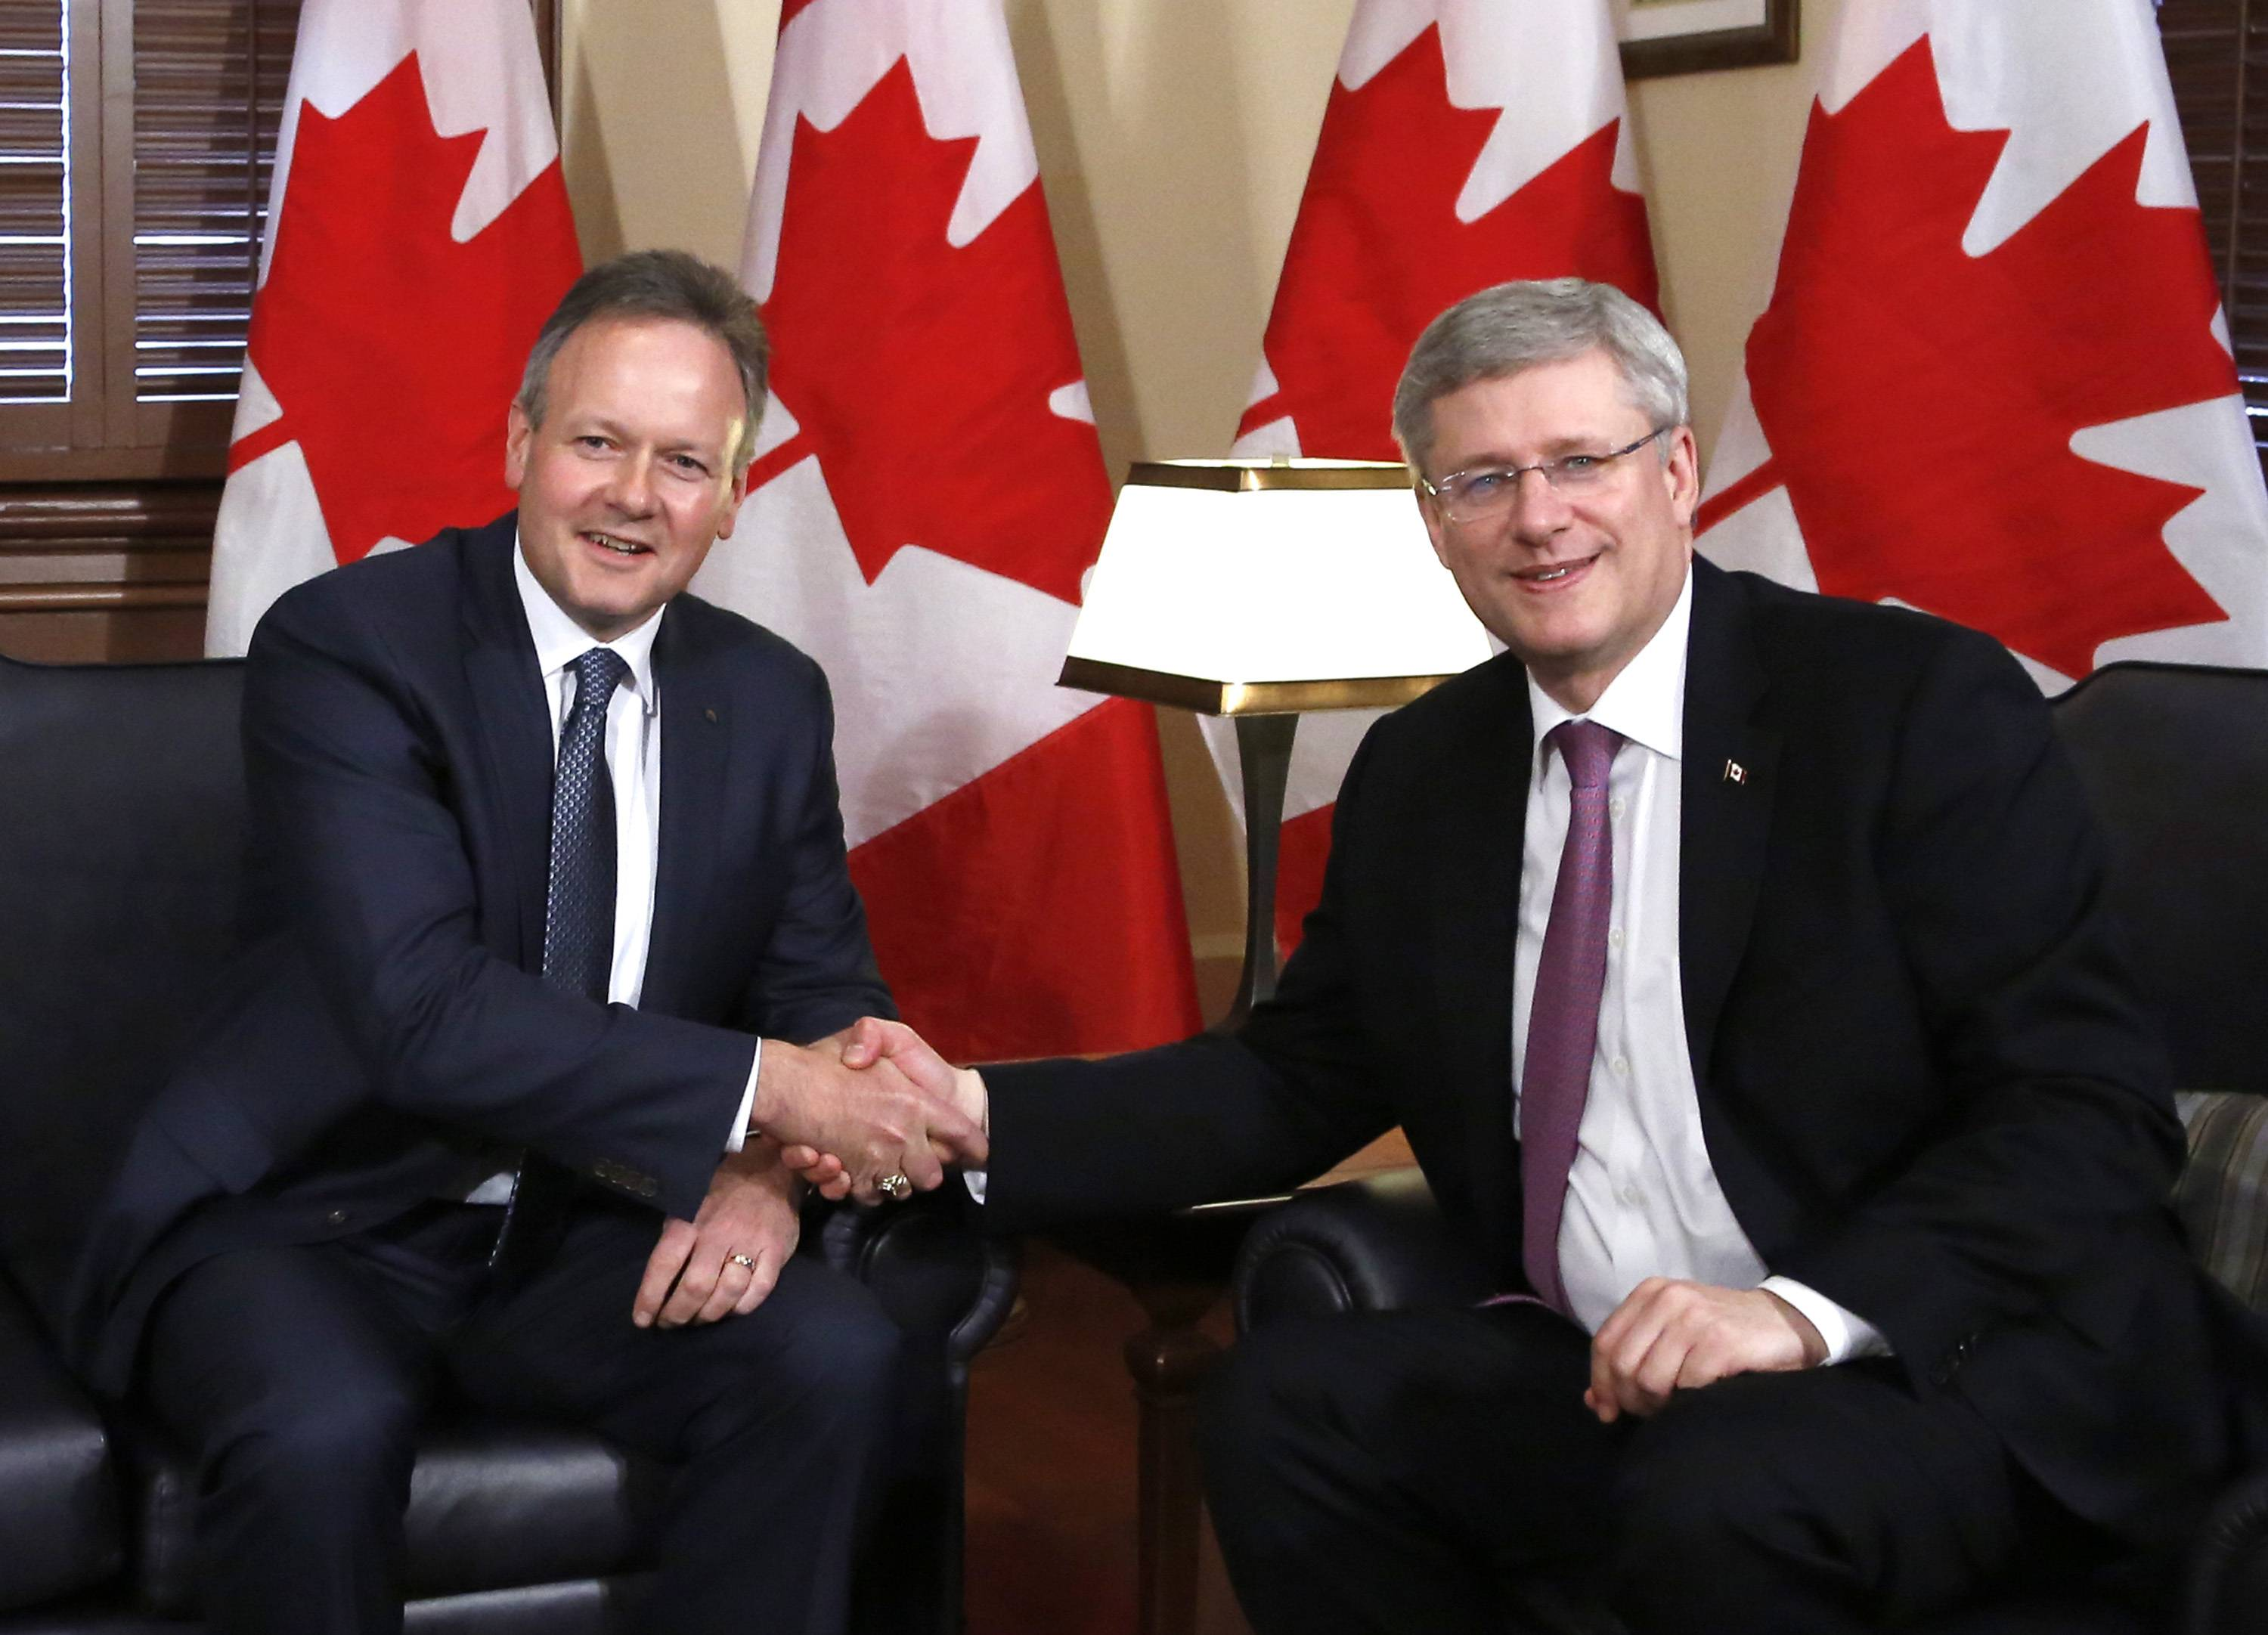 Stephen Poloz, governor of the Bank of Canada, left, shakes hands with by Stephen Harper, Canada's prime minister, right, while being welcomed into office in Ottawa, Ontario, Canada.